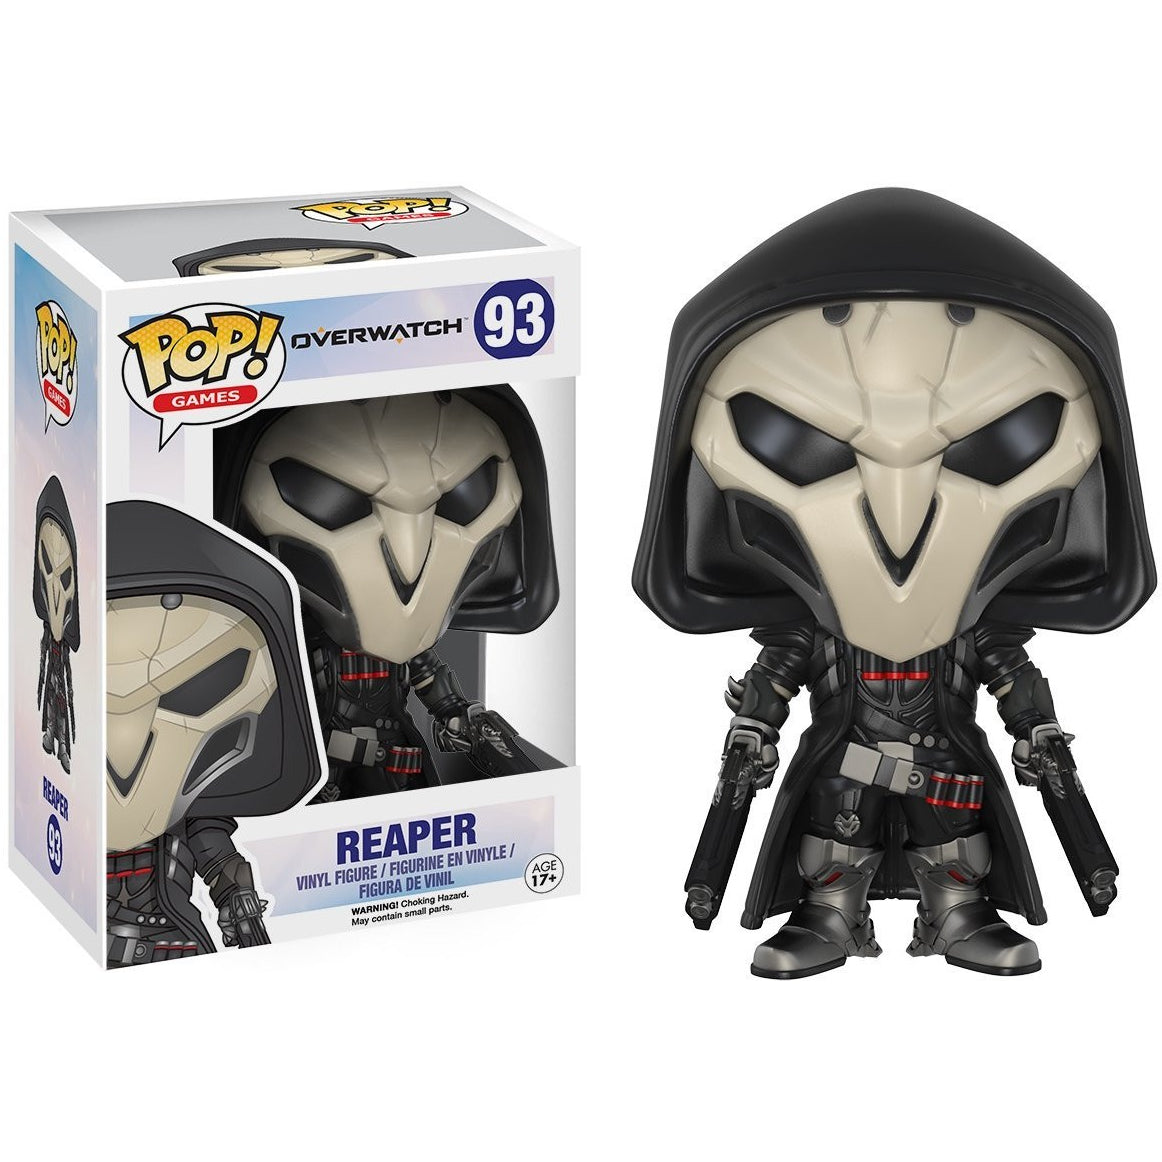 Funko Pop! Games: Overwatch Action Figure - Reaper with box protector!